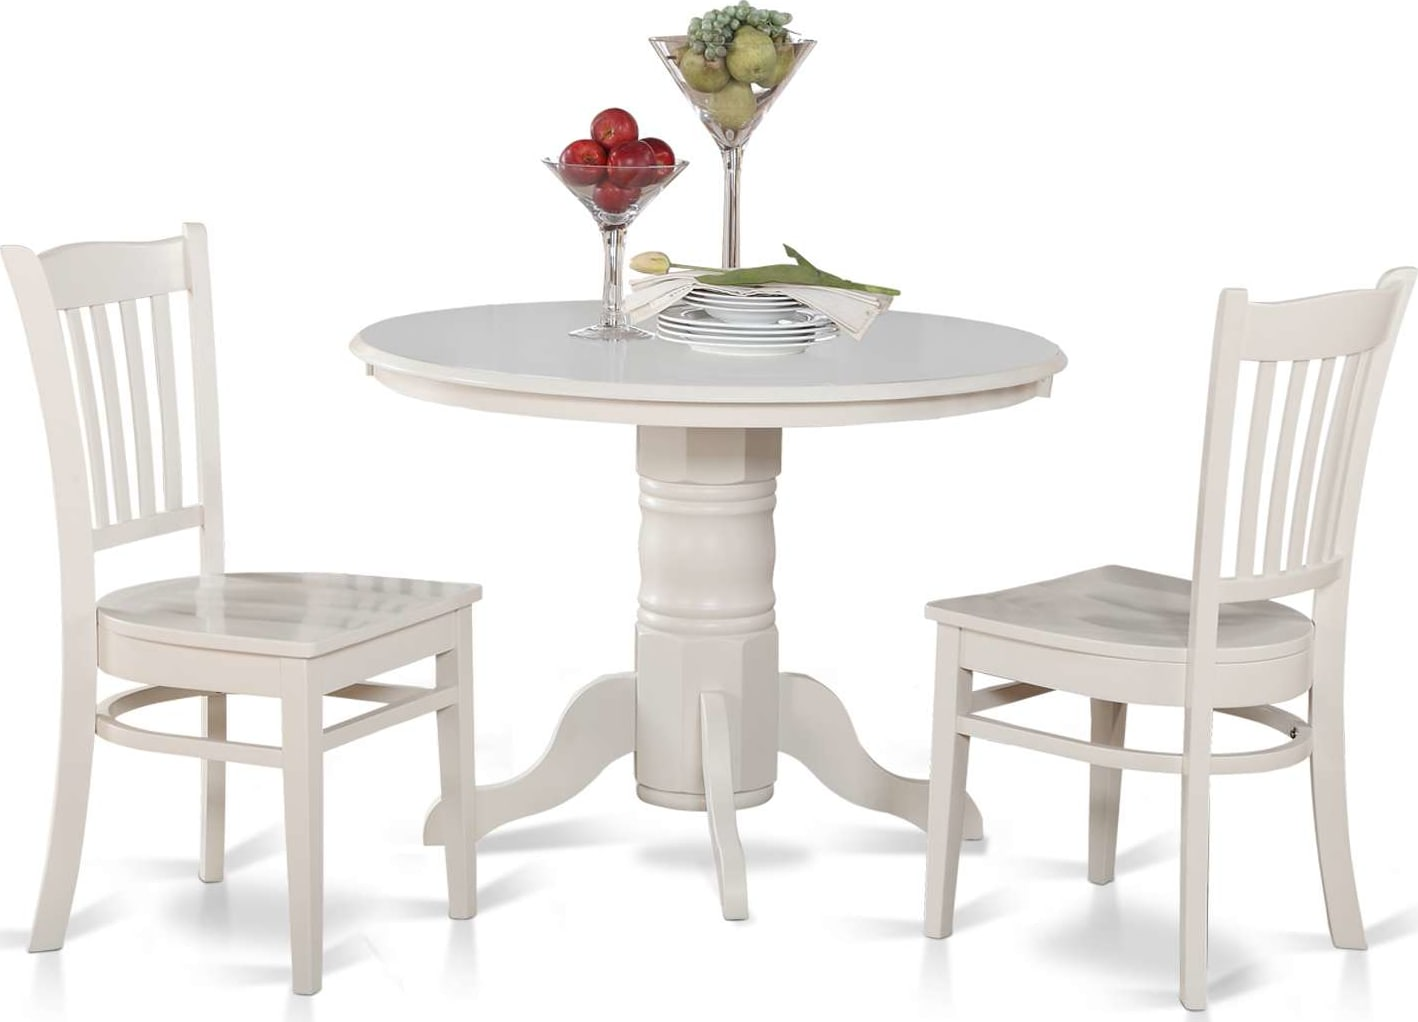 East West Furniture Shelton 3 Piece Kitchen Nook Table Set Round Table And 2 Dinette Chairs Shgr3 Whi W Goedekers Com